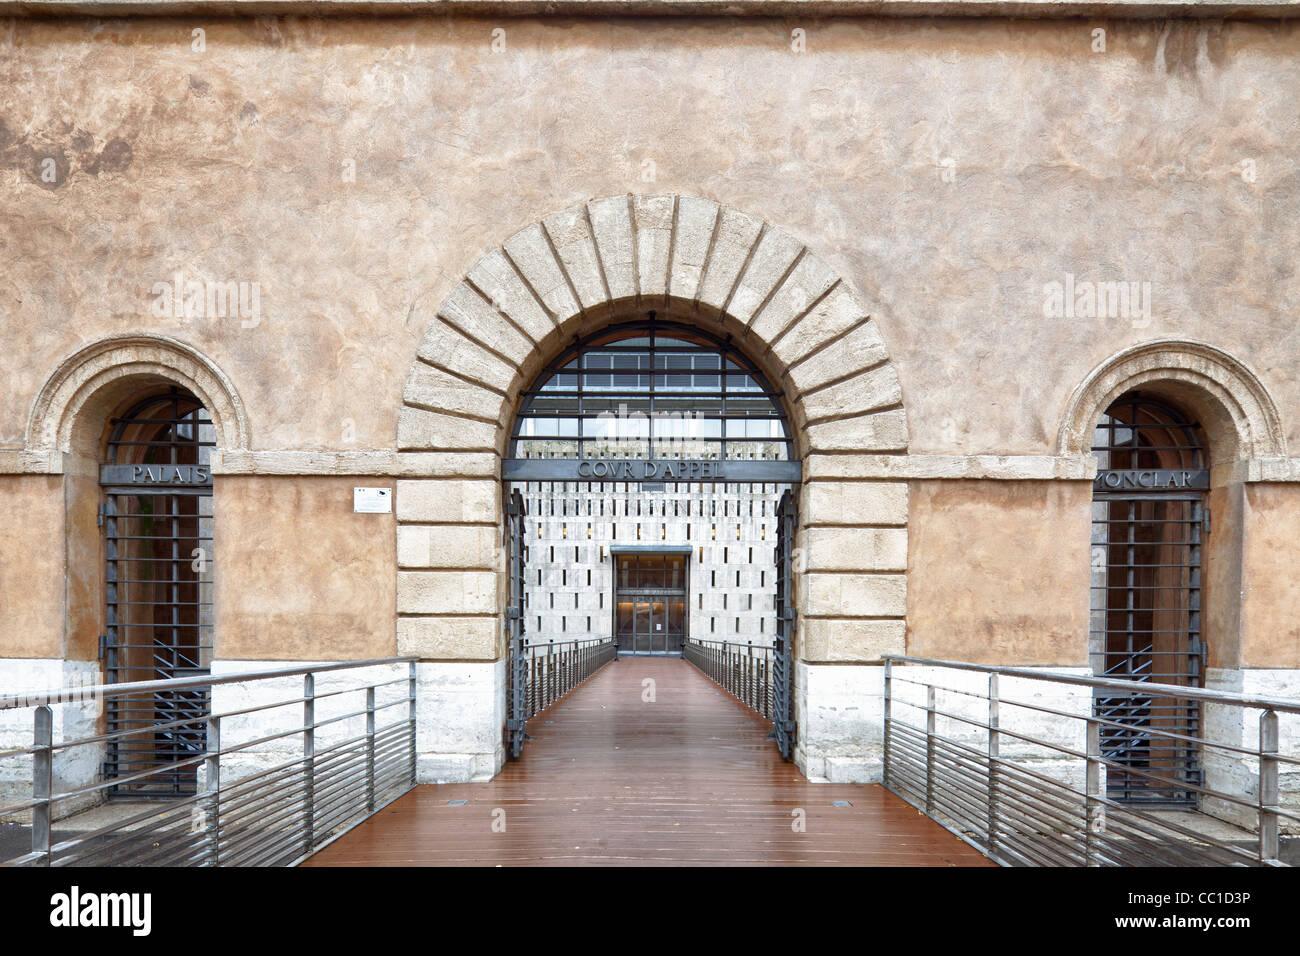 The Appeal Court, Aix-en-Provence, France - Stock Image